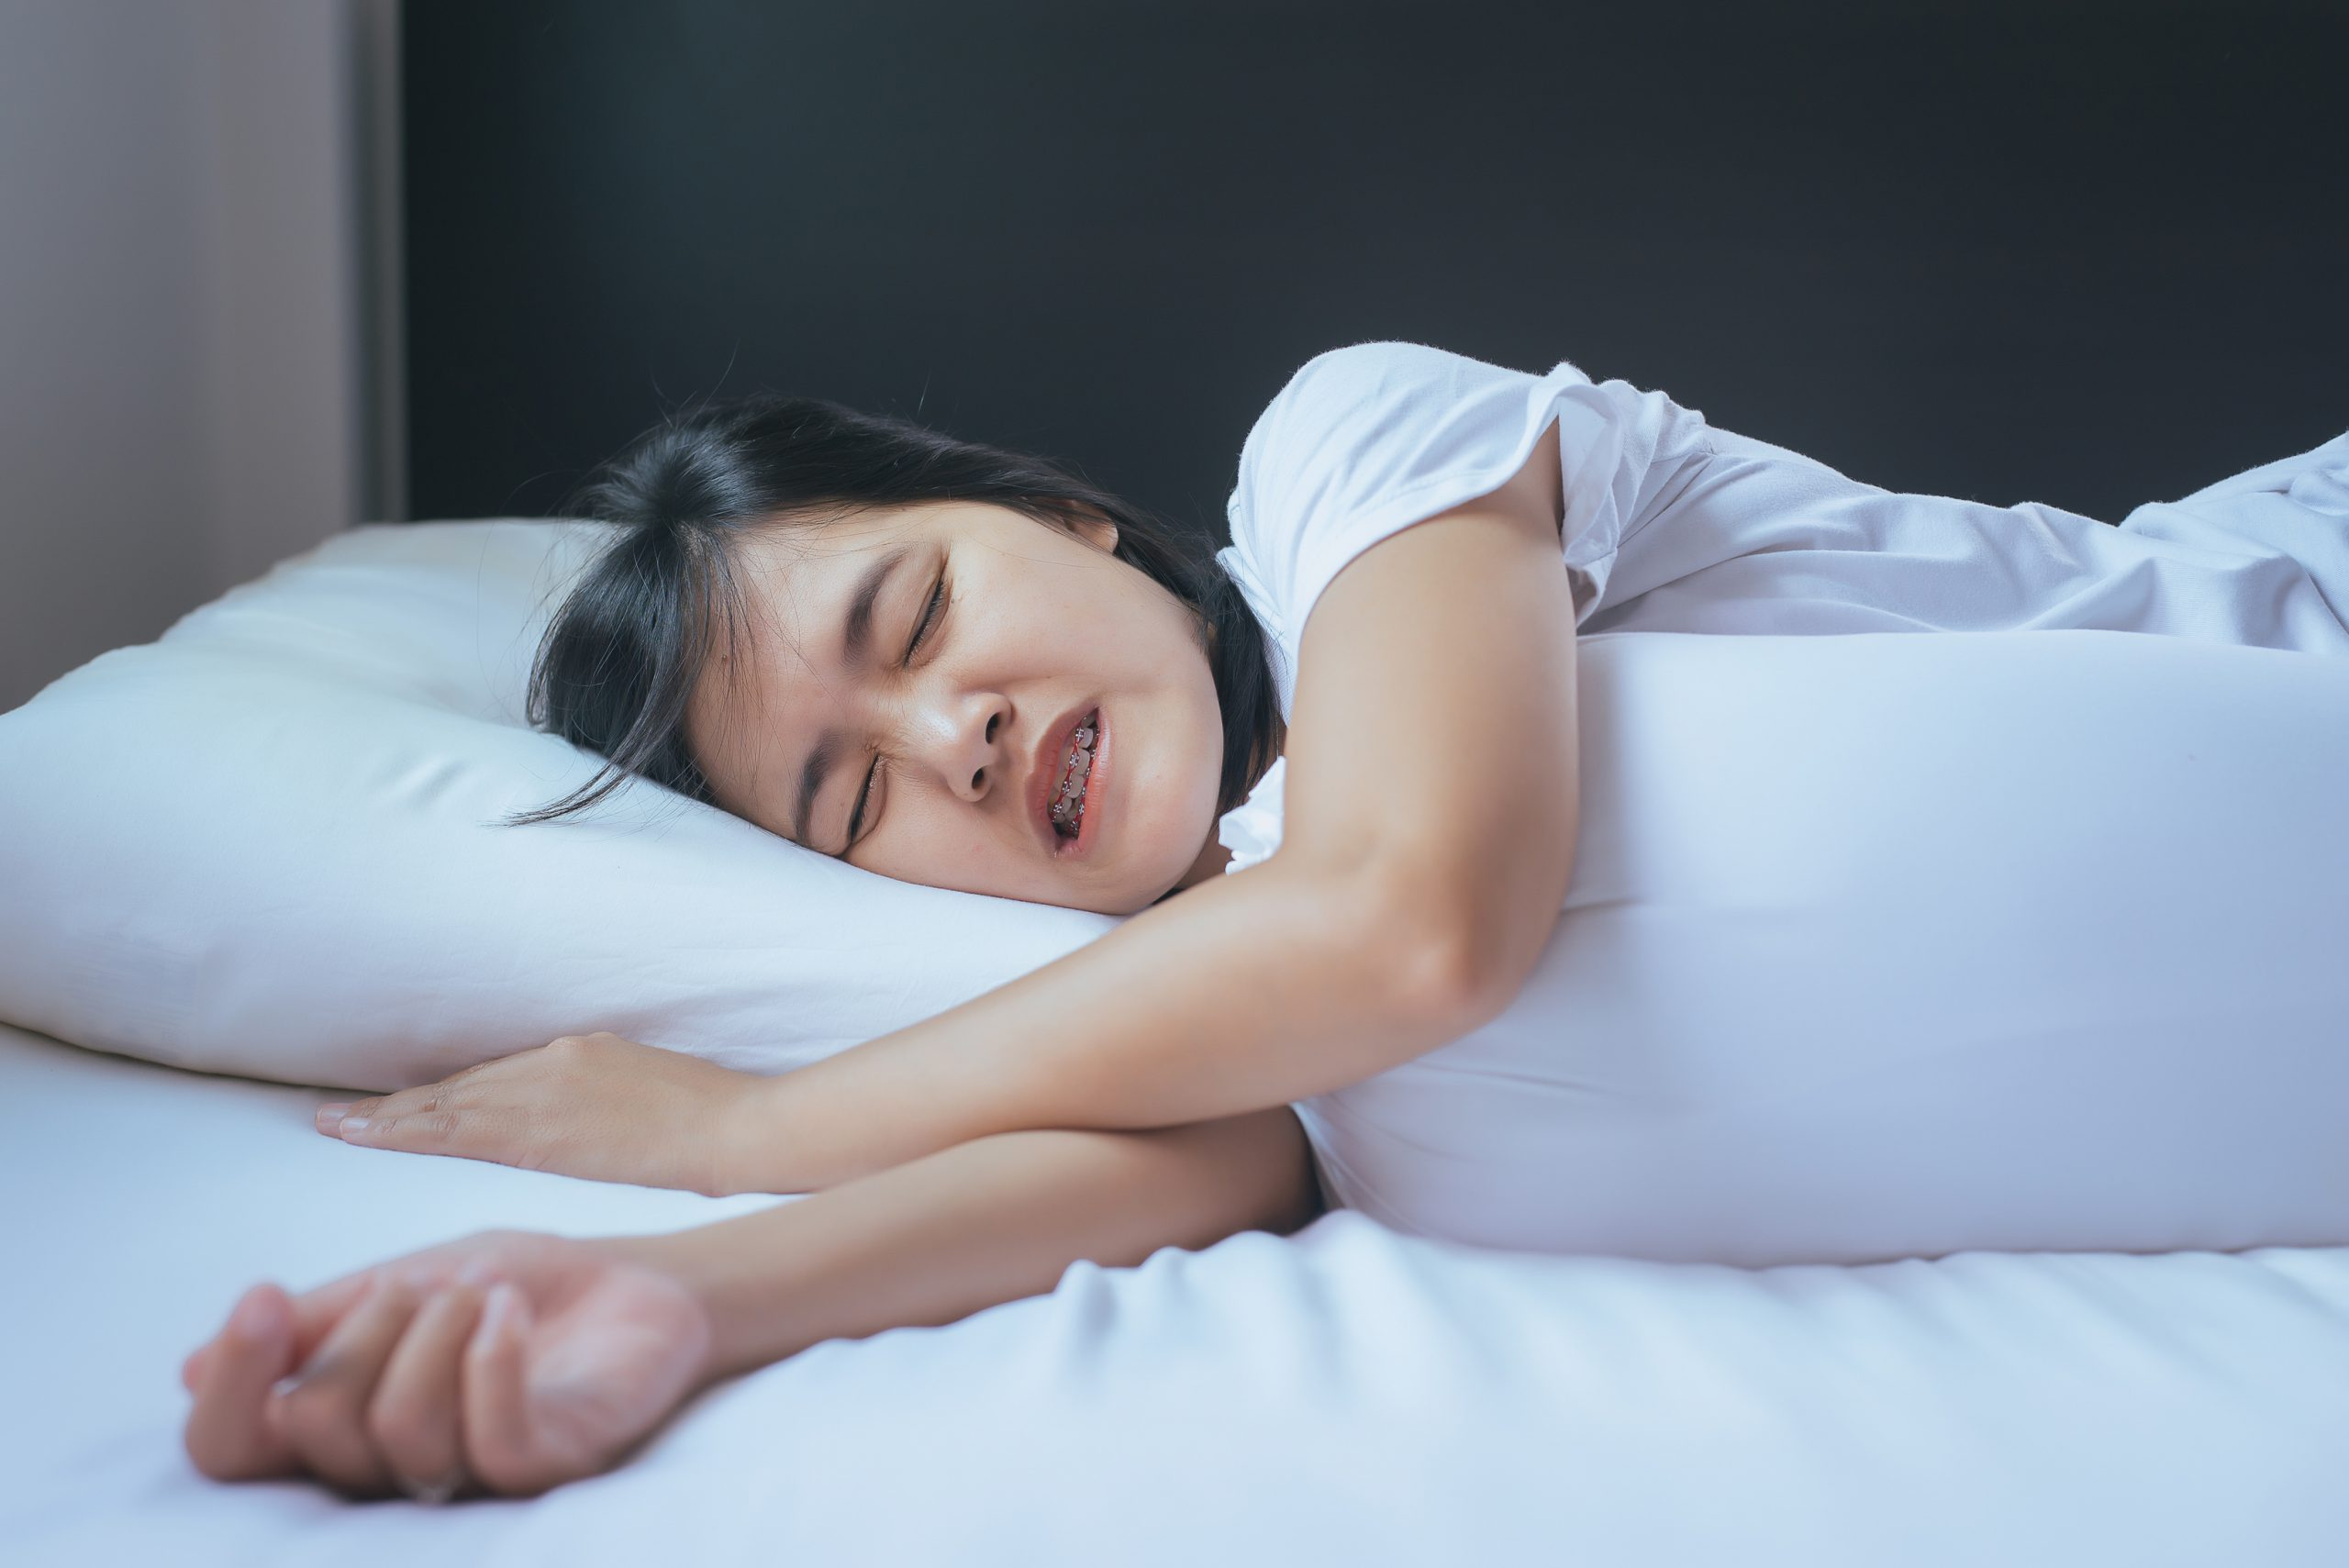 Female sleeping on the bed and grinding teeth,Tiredness and stress